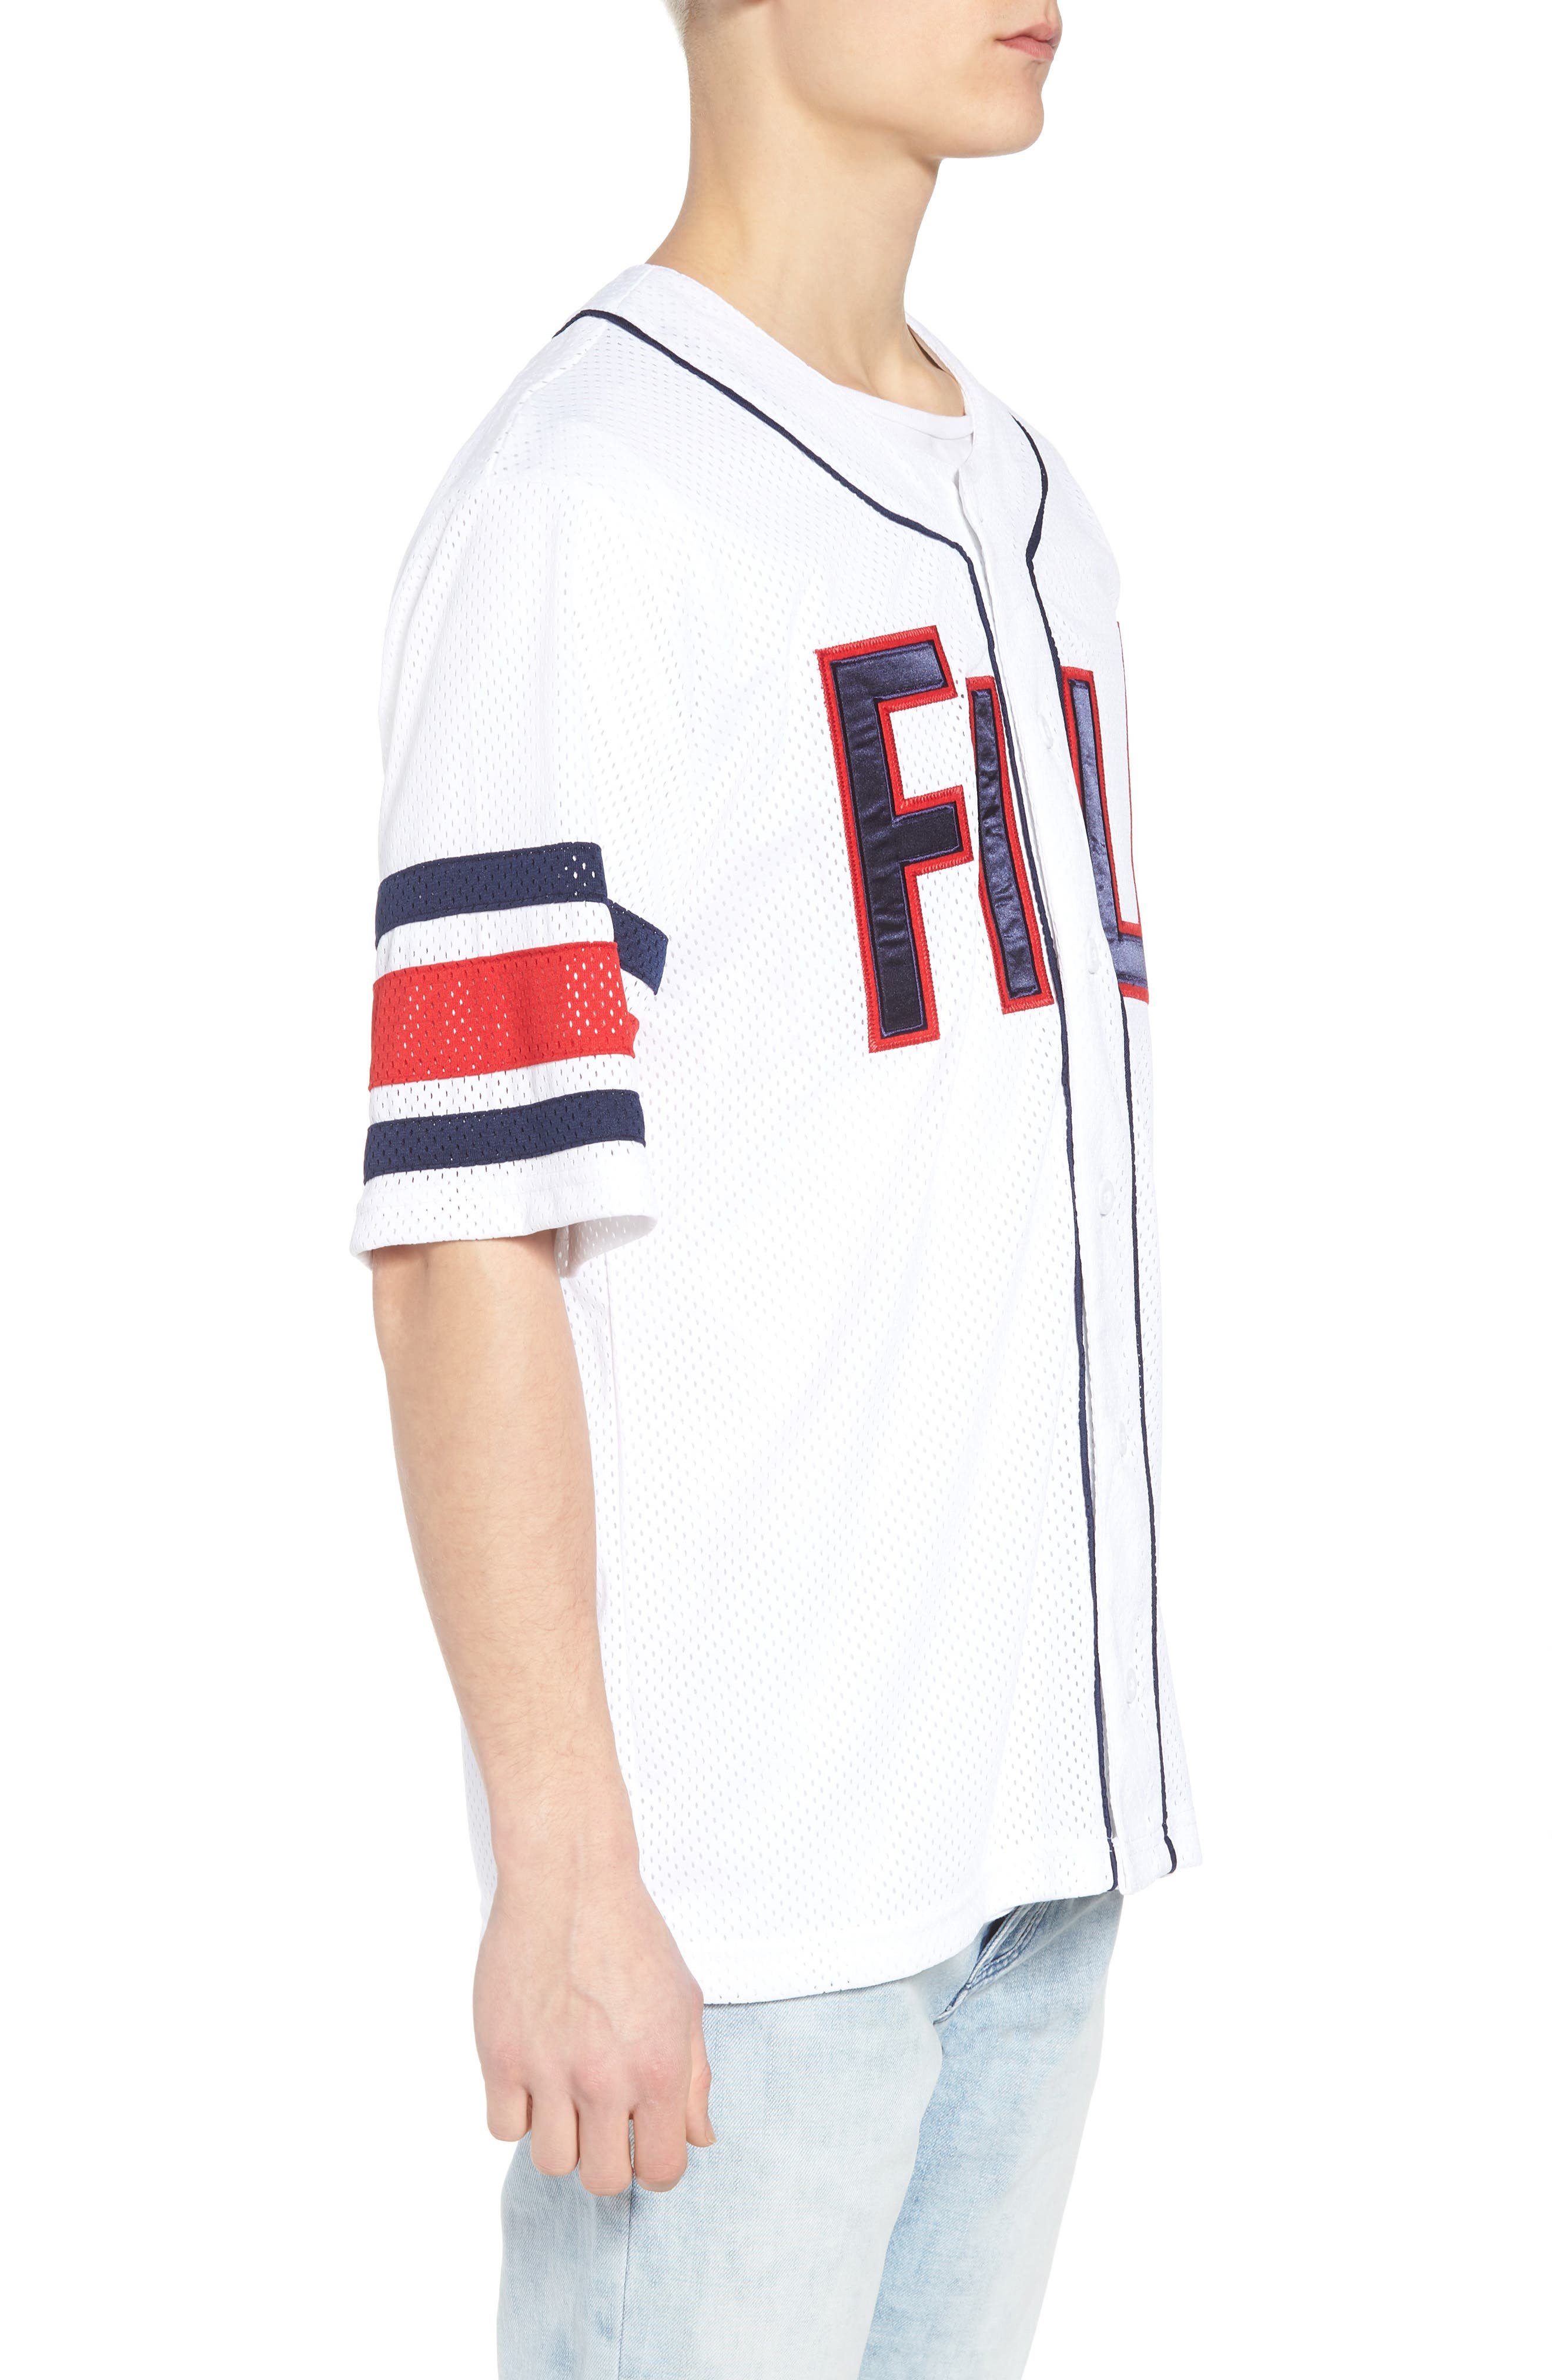 Kyler Baseball Jersey,                             Alternate thumbnail 3, color,                             White/ Peacoat/ Chinese Red